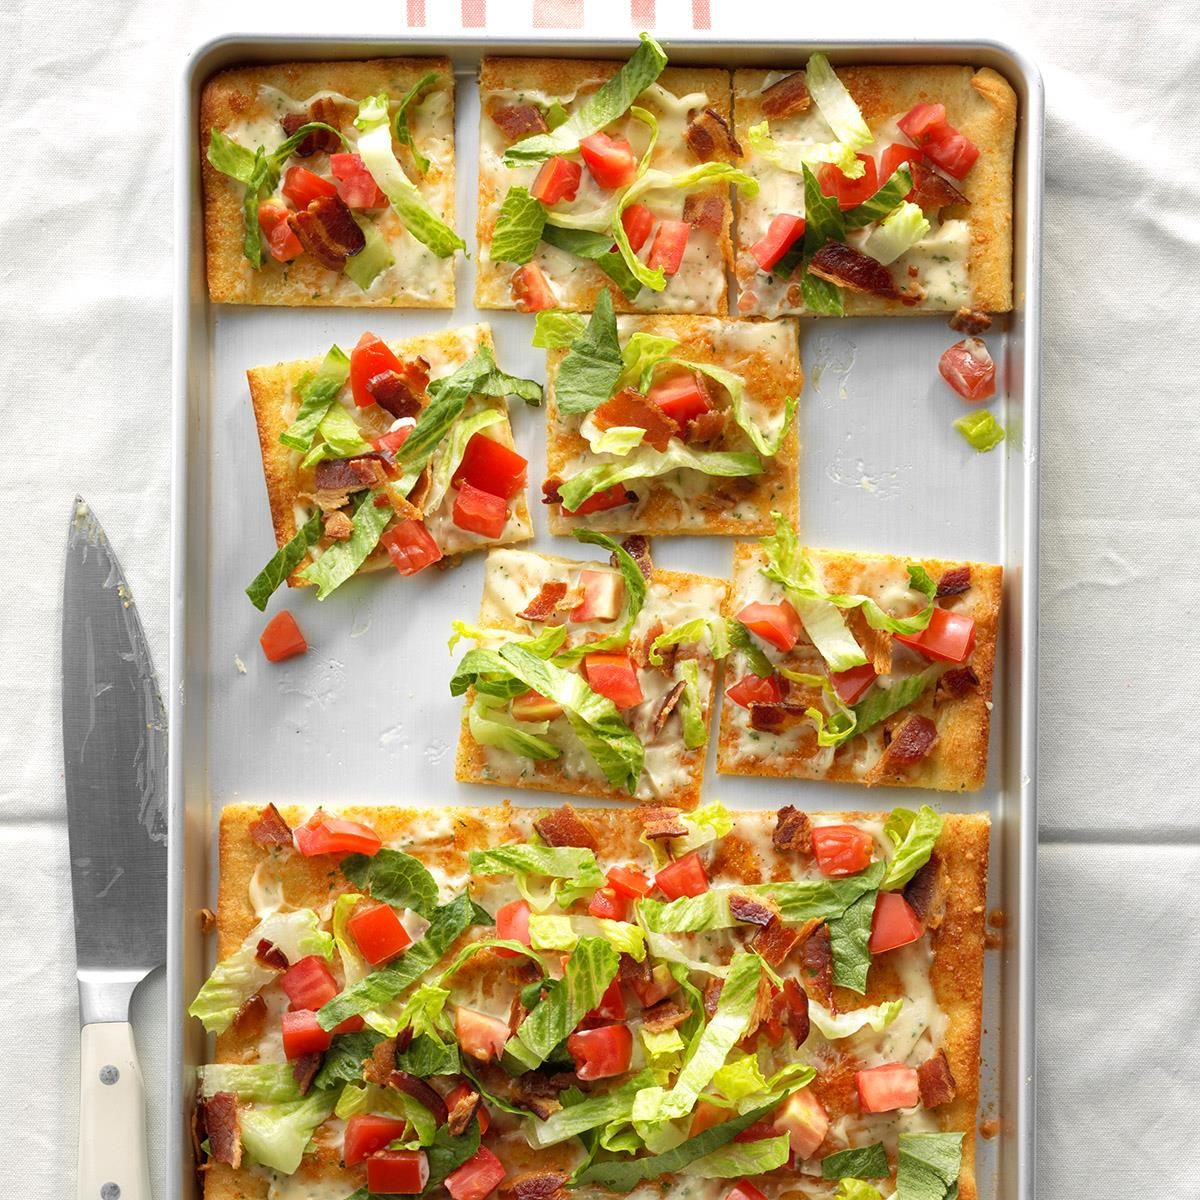 Day 1 Dinner: Bacon, Lettuce and Tomato Pizza